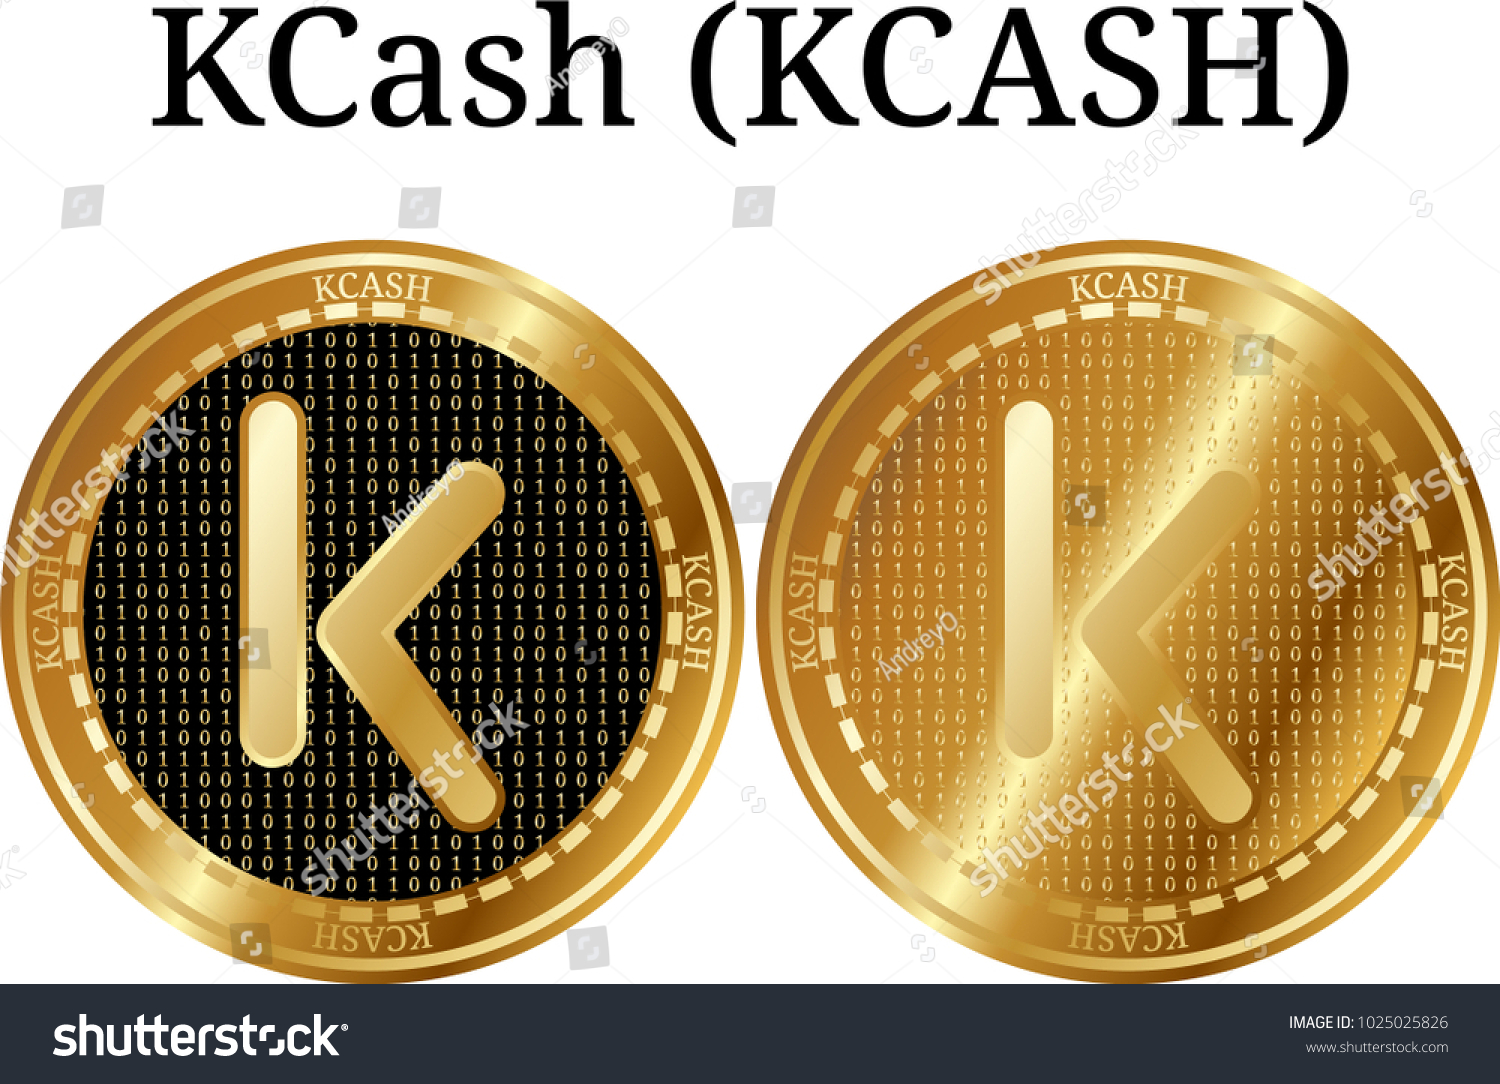 how to buy cryptocurrency in kcash